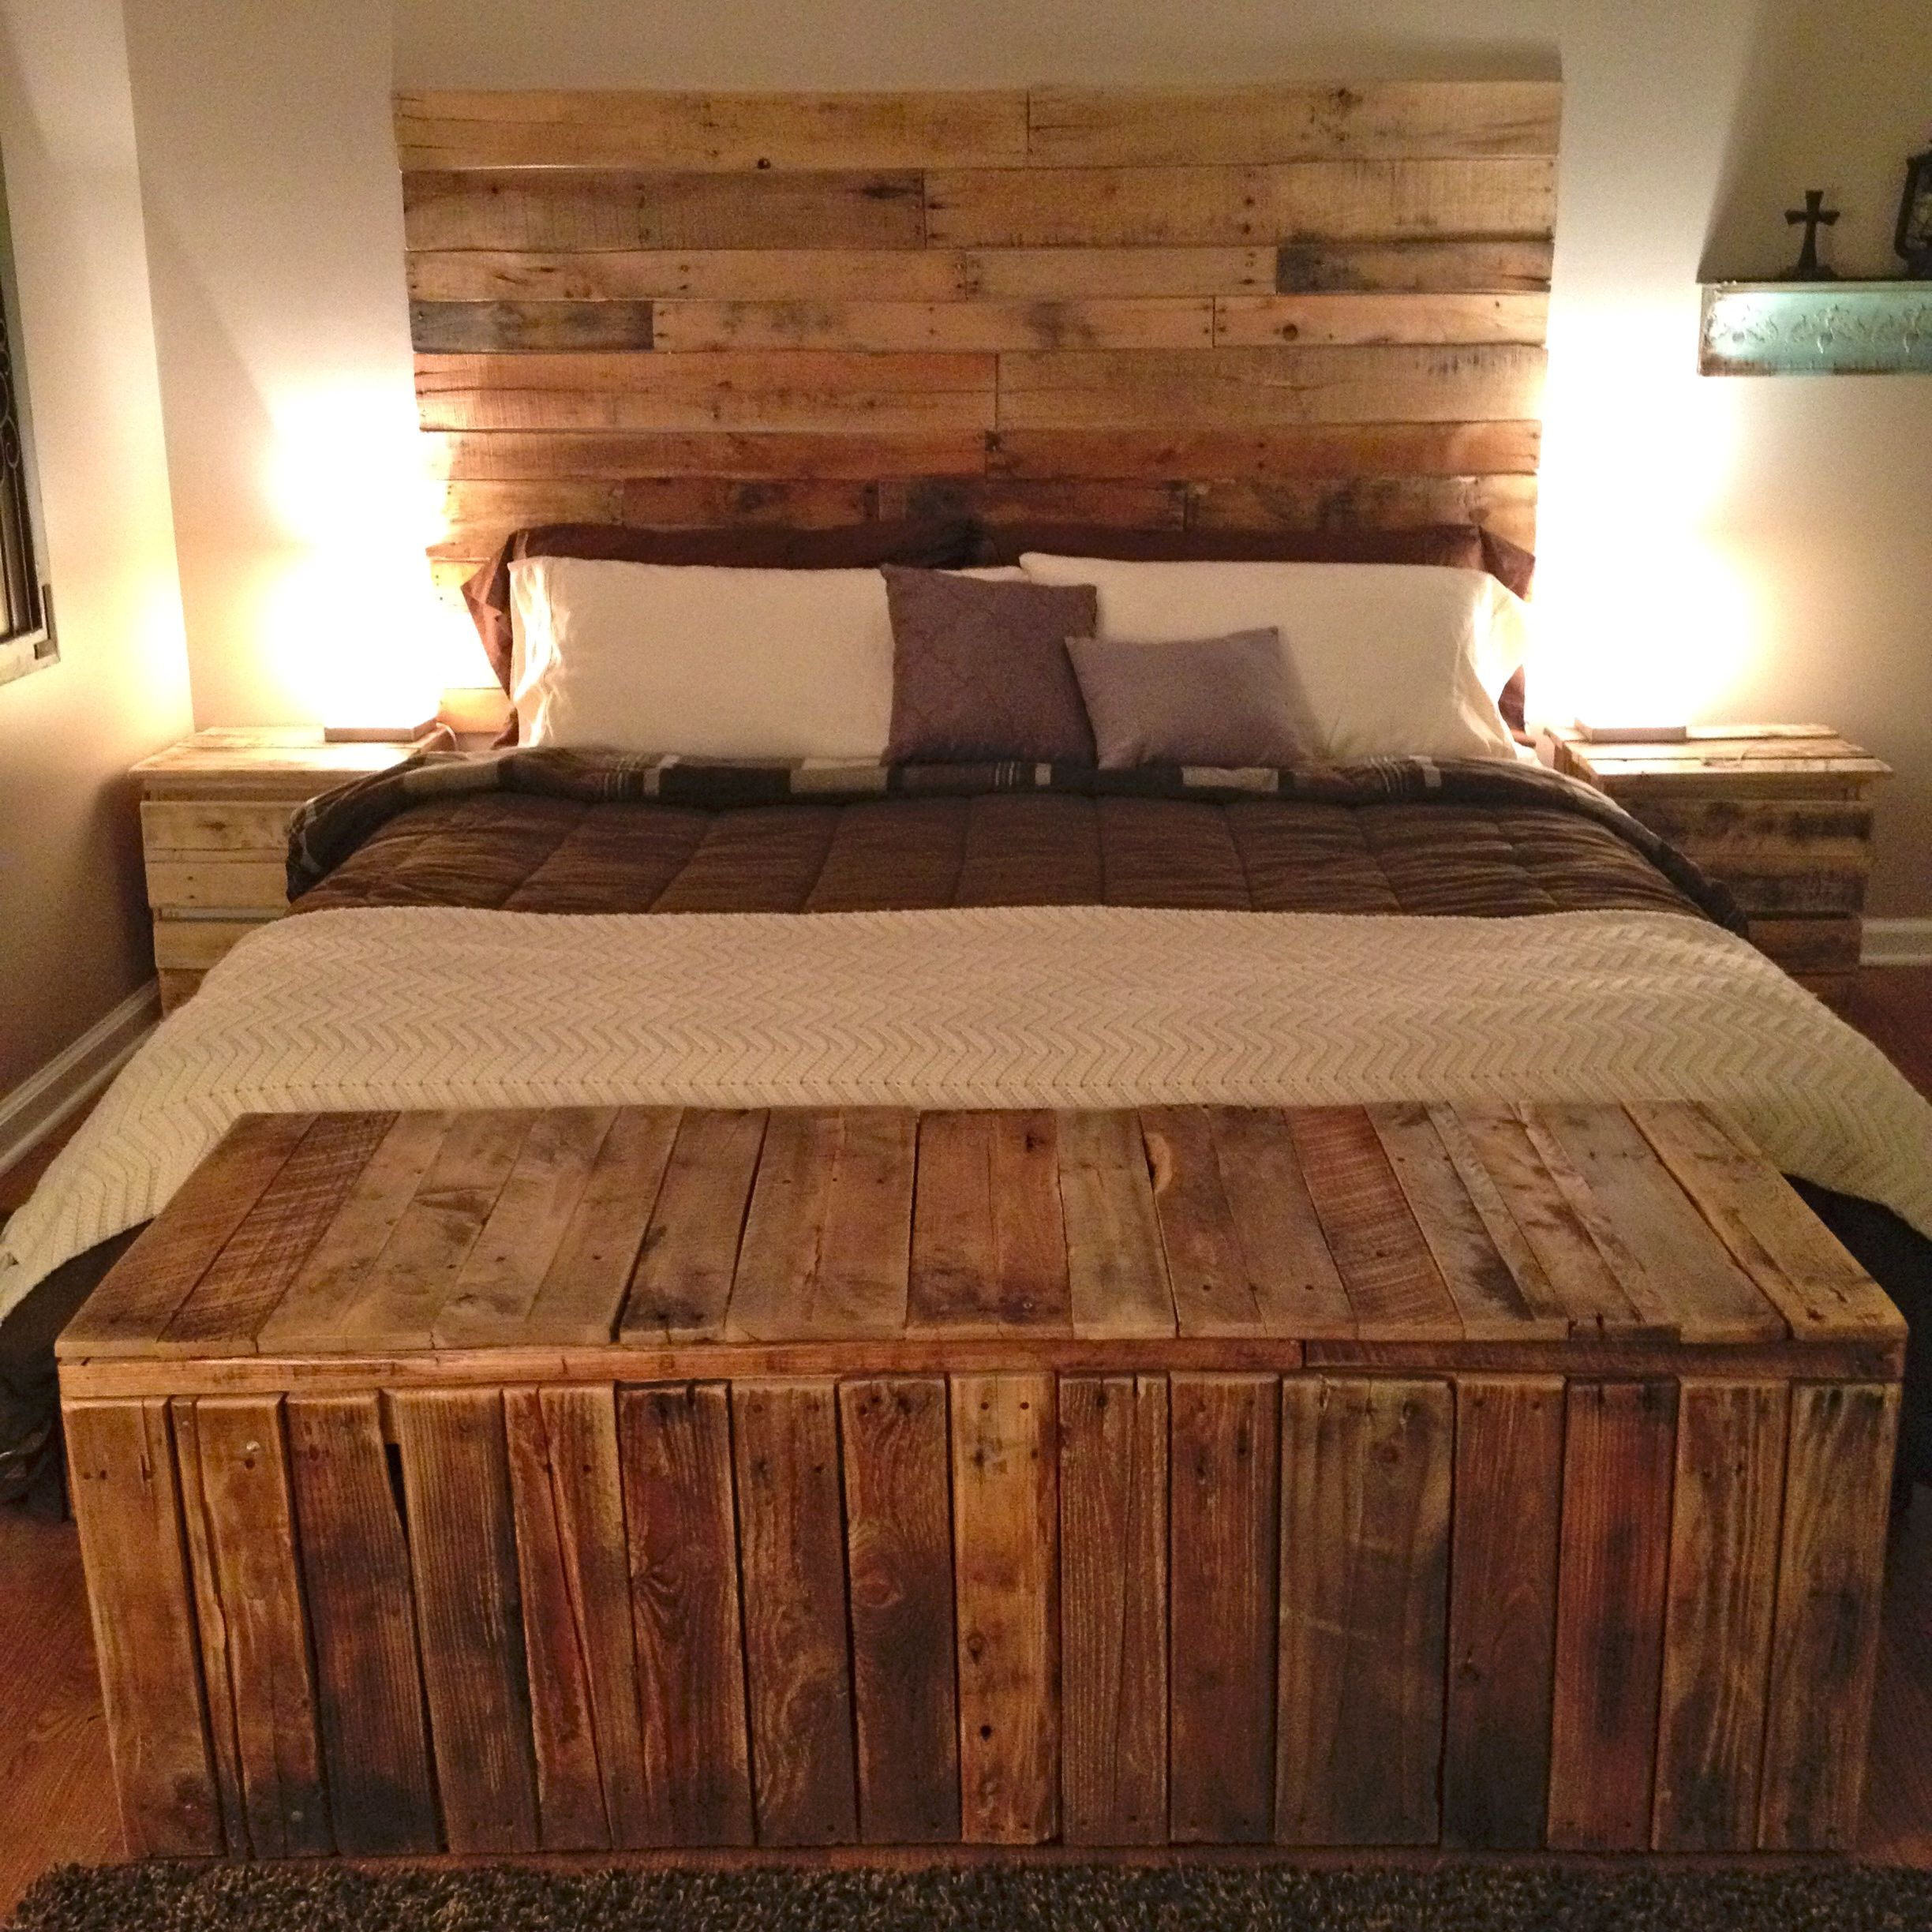 Pin By Teea Goans On Decor Wood Pallet Bed Frame Pallet Furniture Pallet Beds